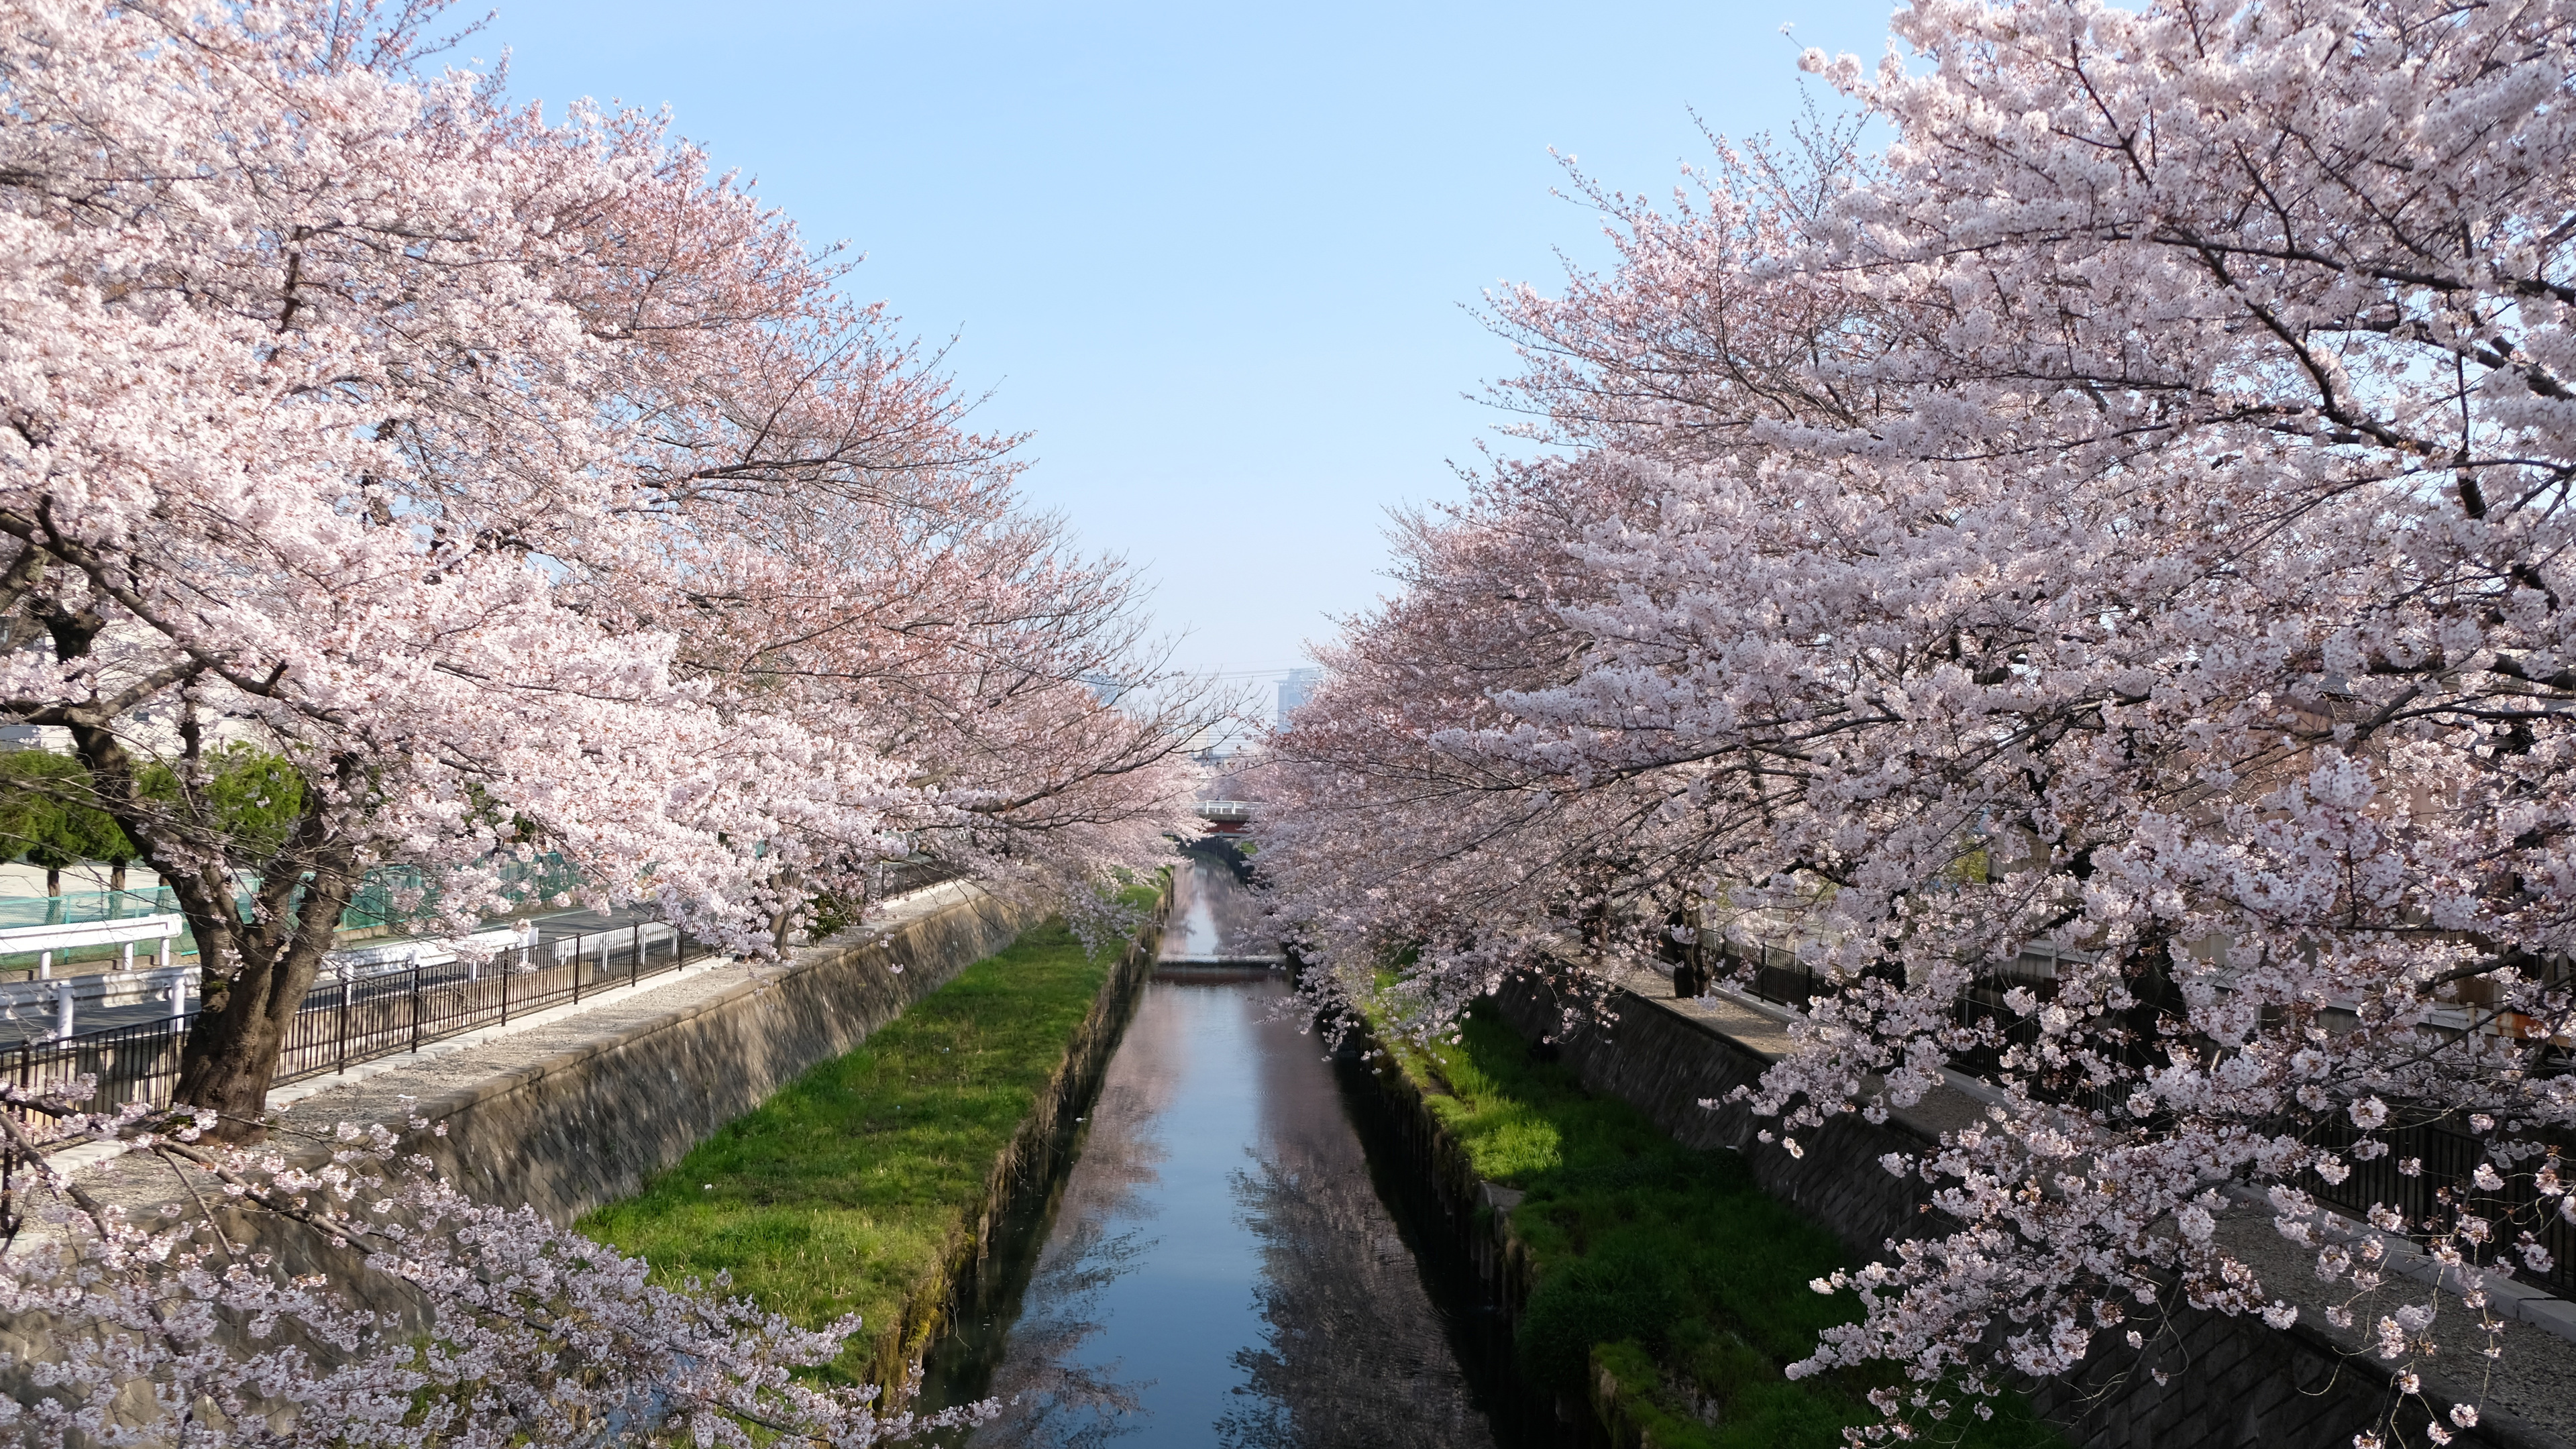 cherry trees seasonal 4k 1540136219 - Cherry Trees Seasonal 4k - trees wallpapers, spring wallpapers, nature wallpapers, hd-wallpapers, cherry wallpapers, 5k wallpapers, 4k-wallpapers